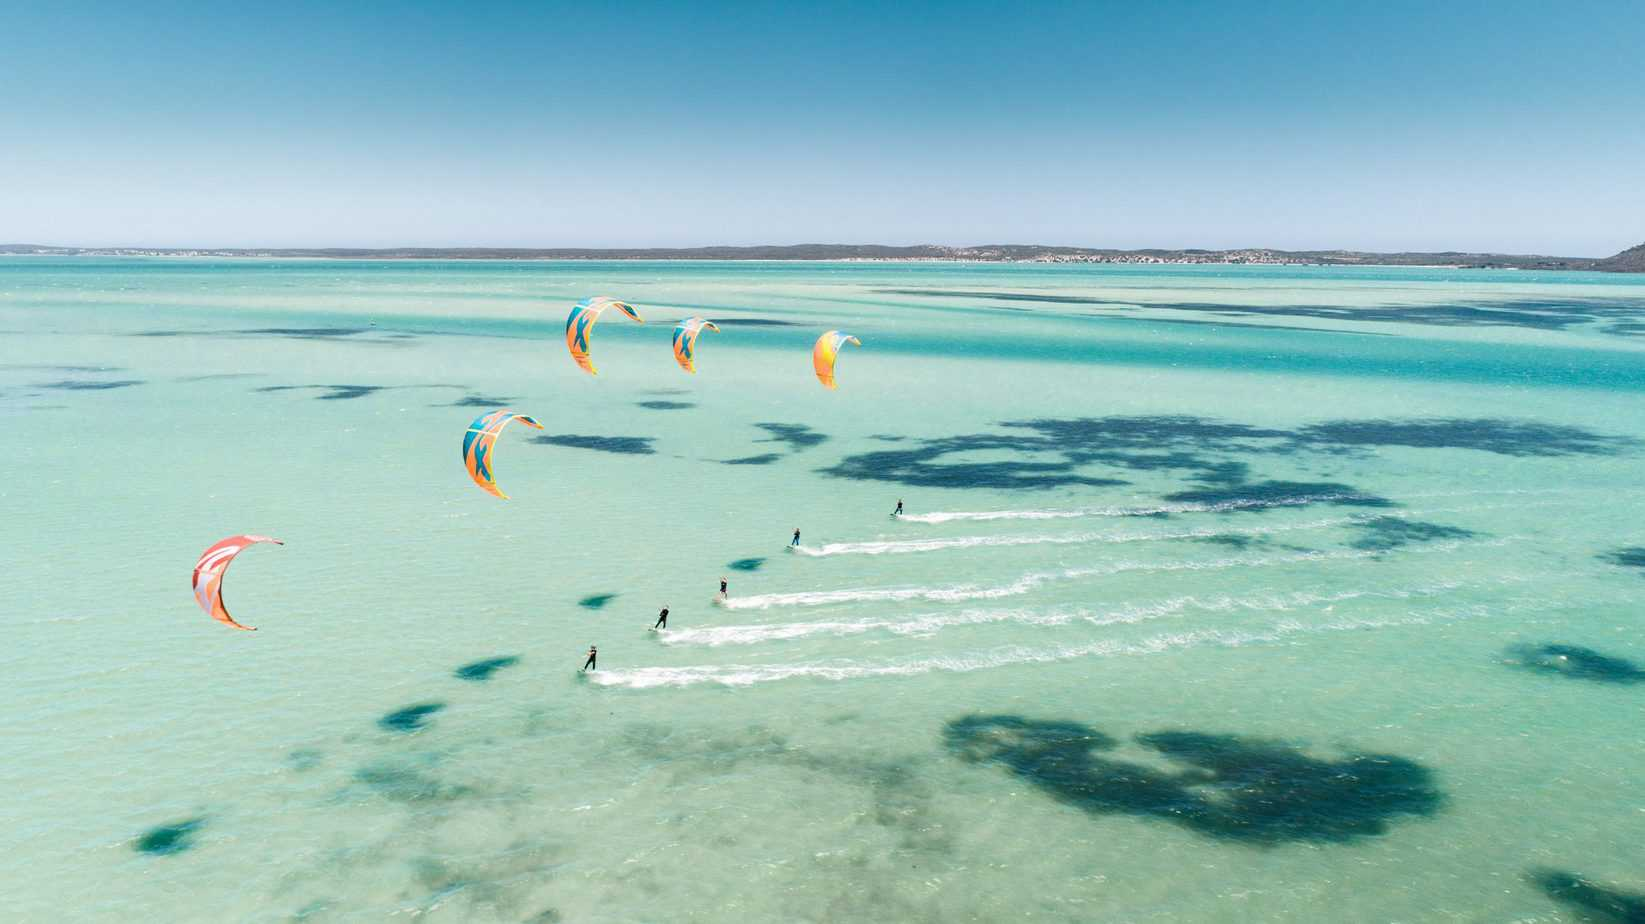 Several kiteboarders riding in the same direction on turquoise sea, in the daytime.